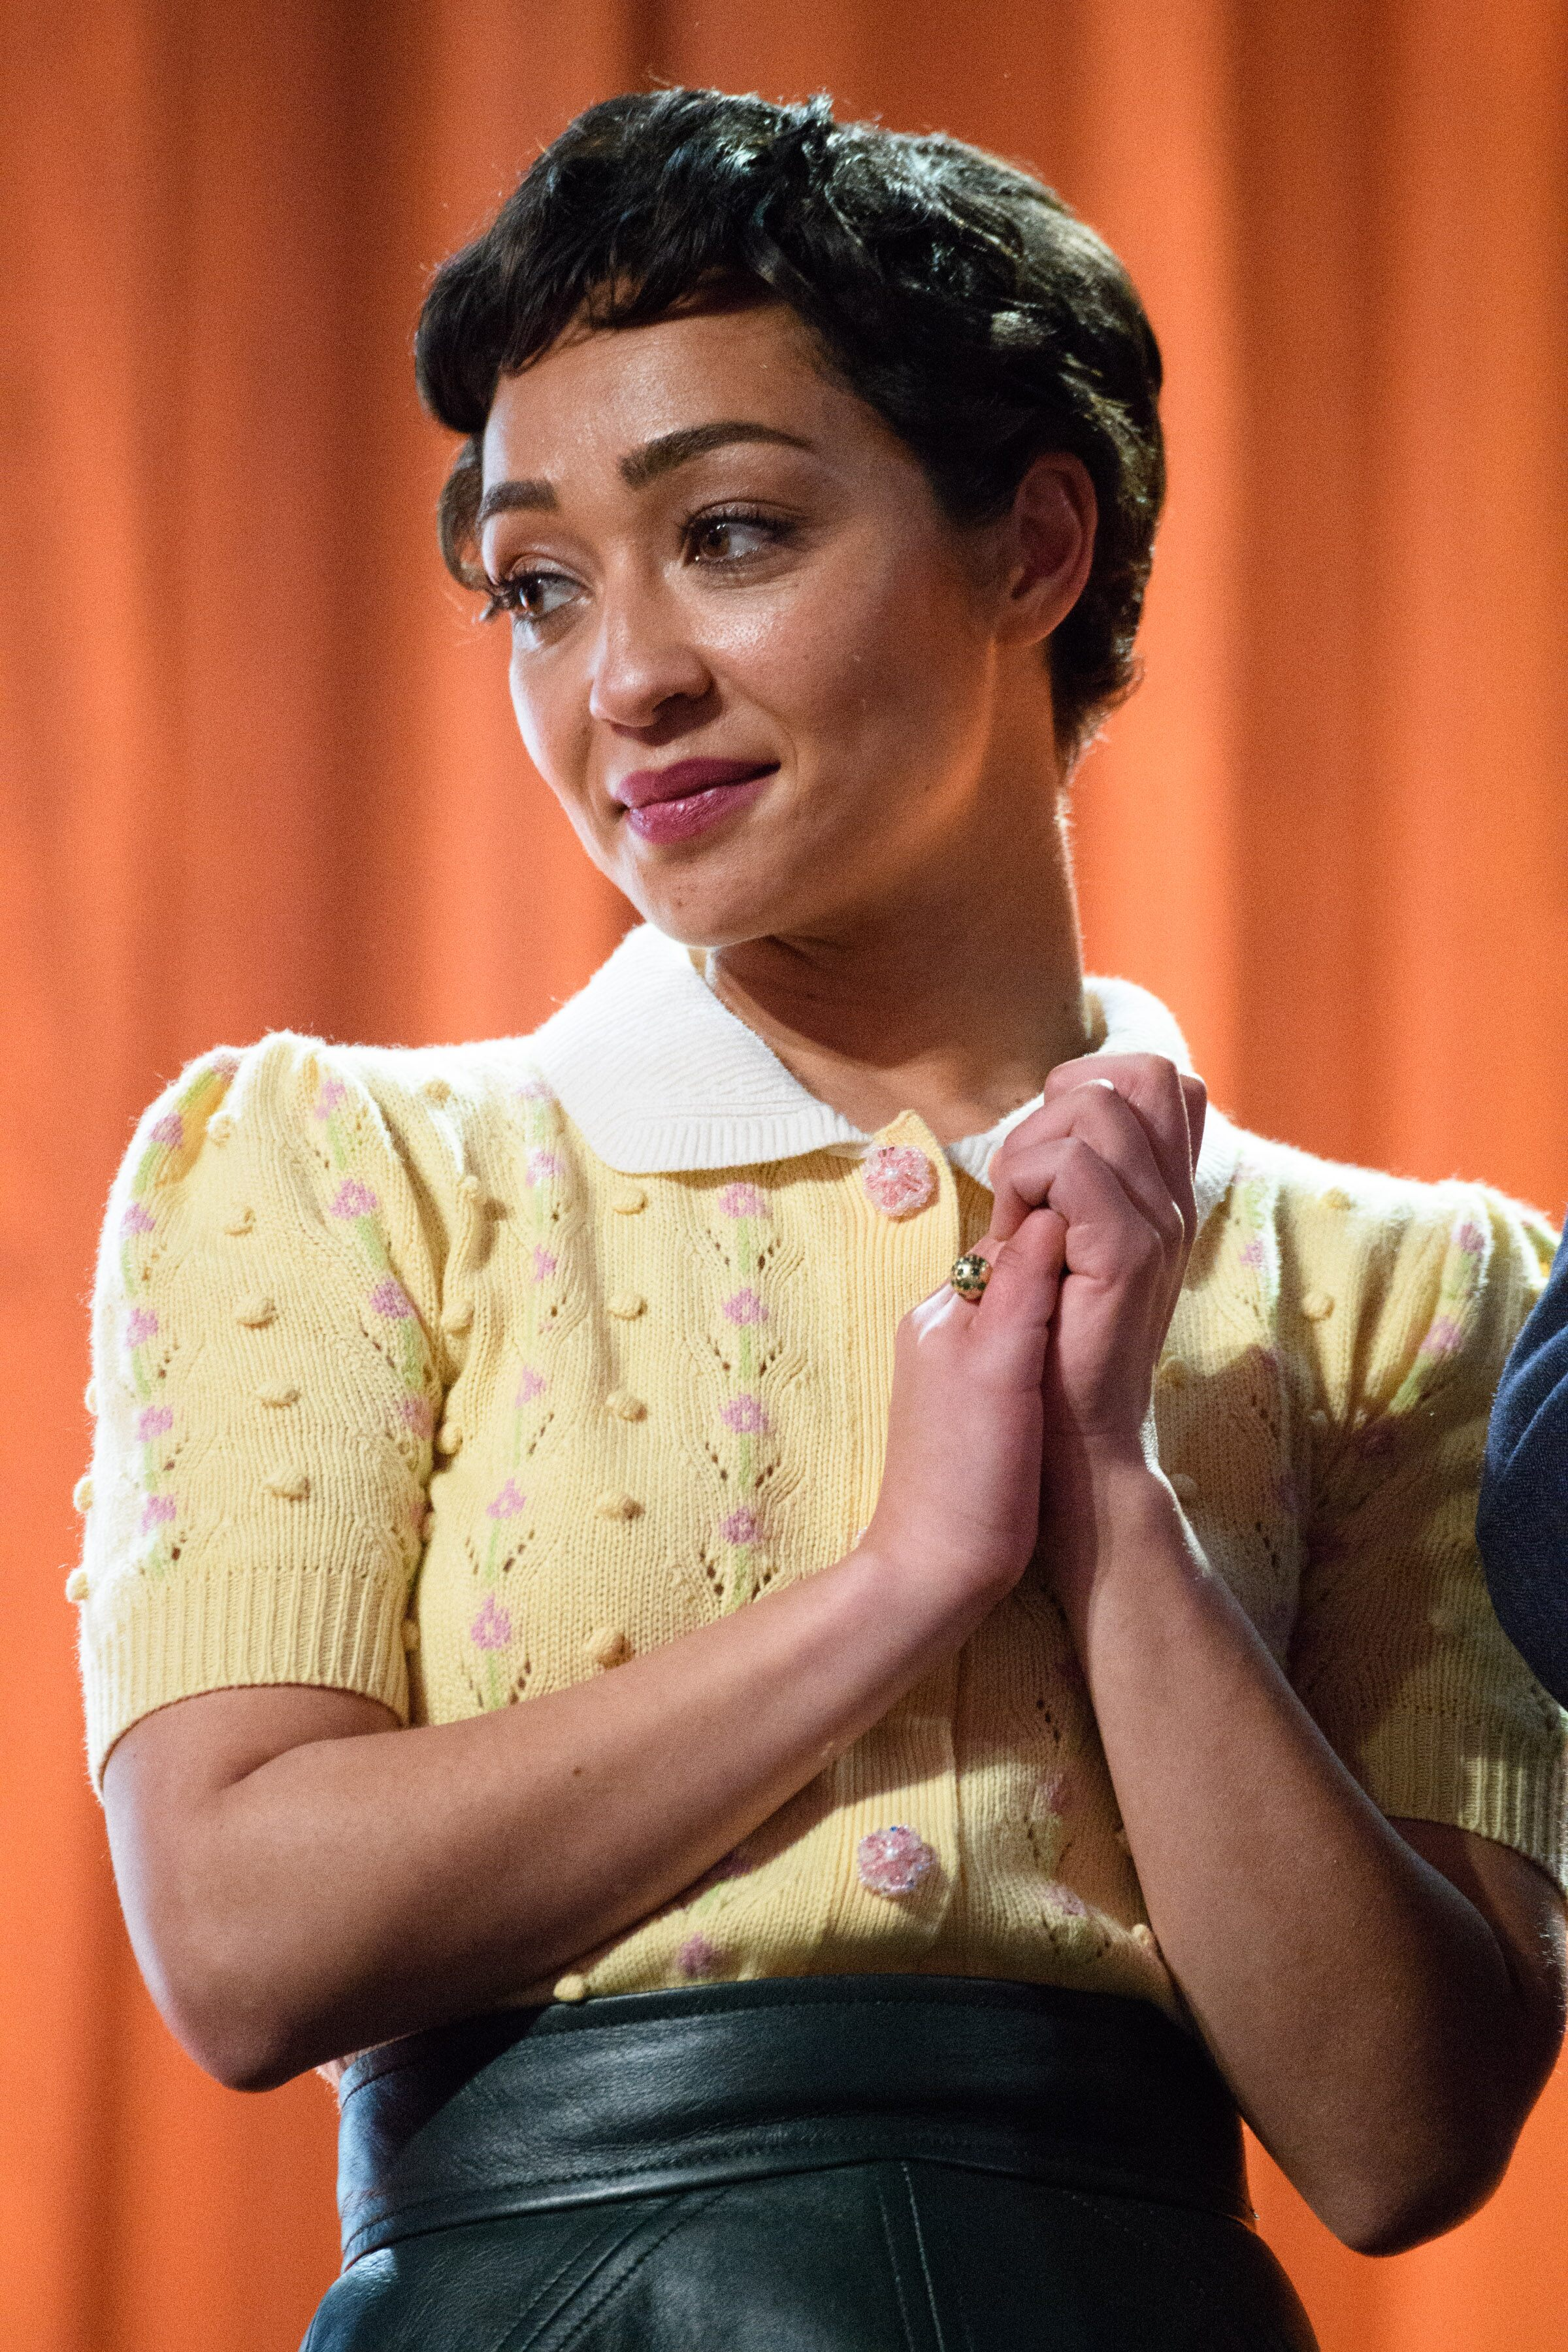 Oscar nominee Ruth Negga